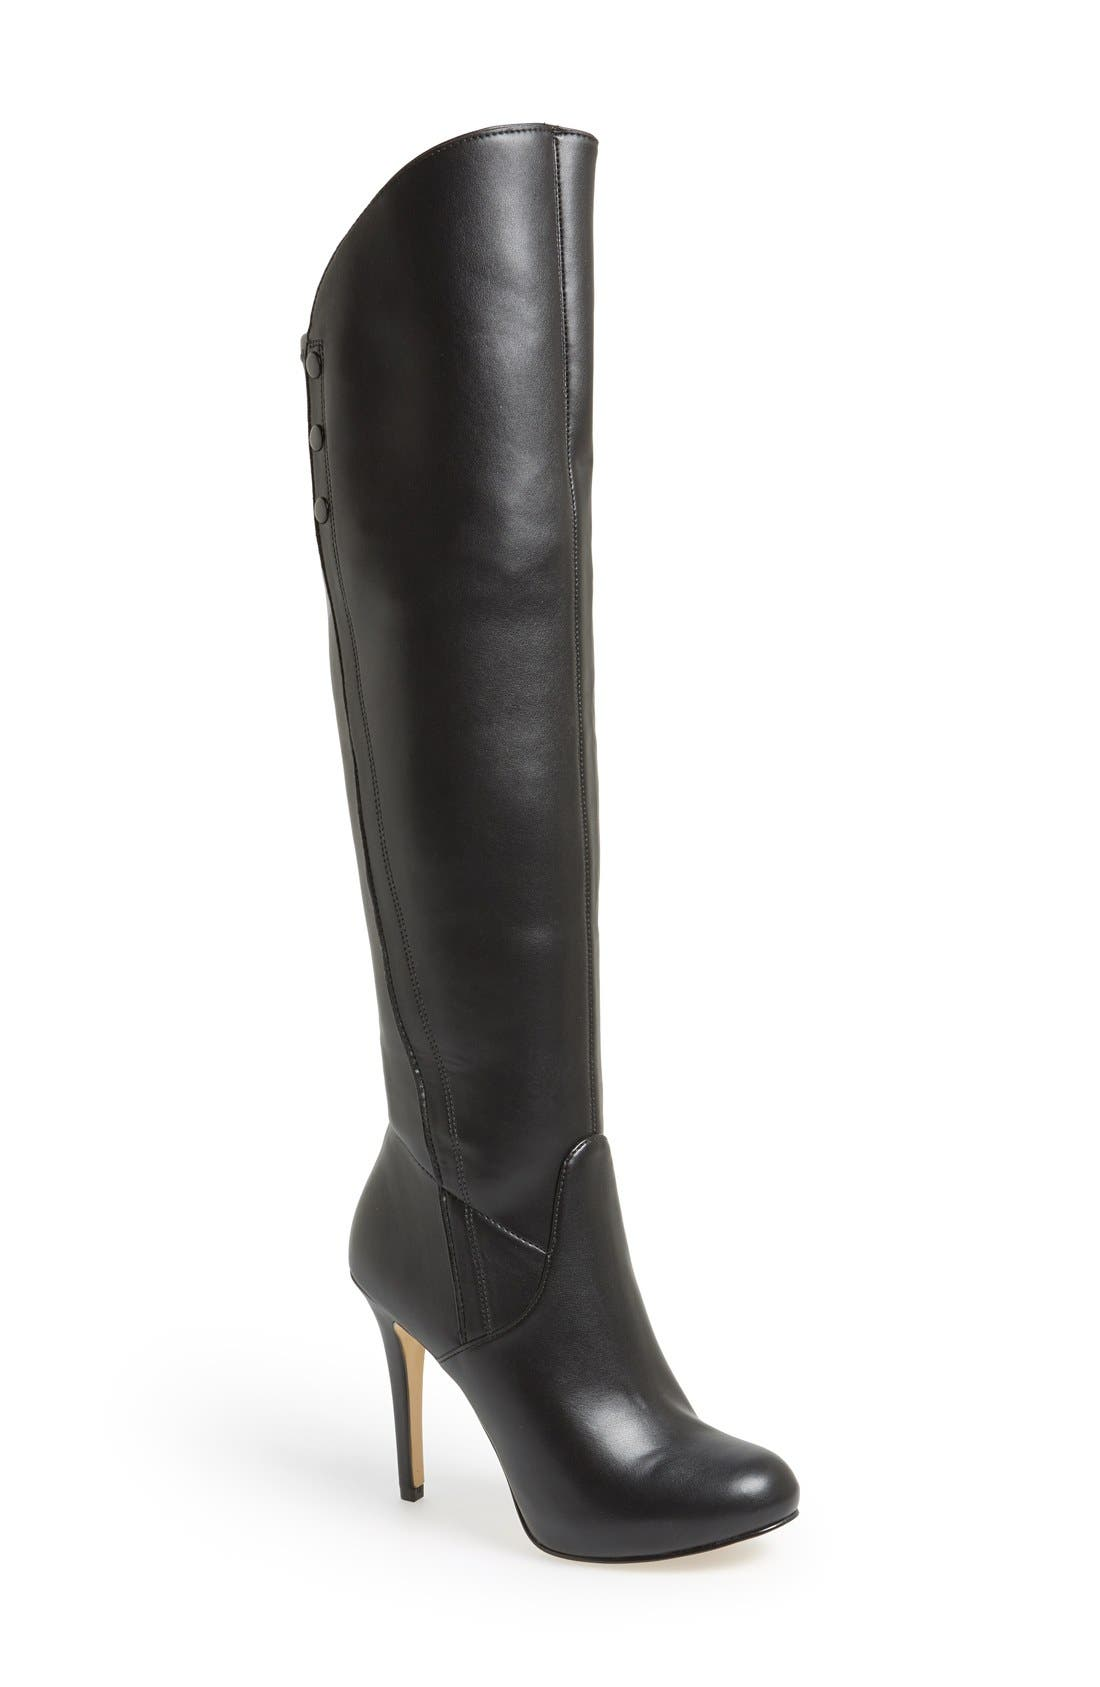 Alternate Image 1 Selected - Guess 'Enesta' Platform Over The Knee Boot (Women)